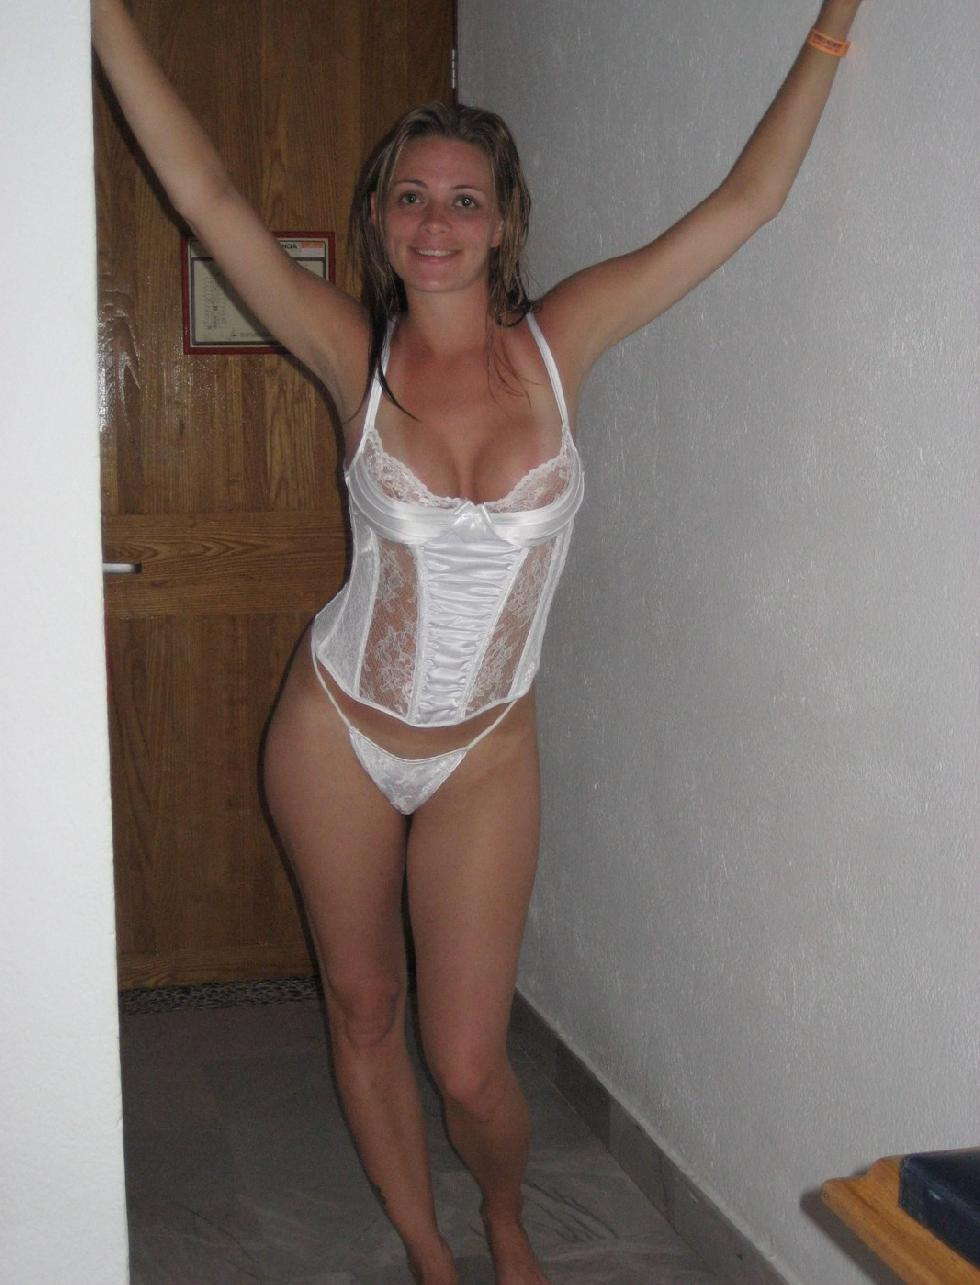 Amateur in sexy white lingerie - 2